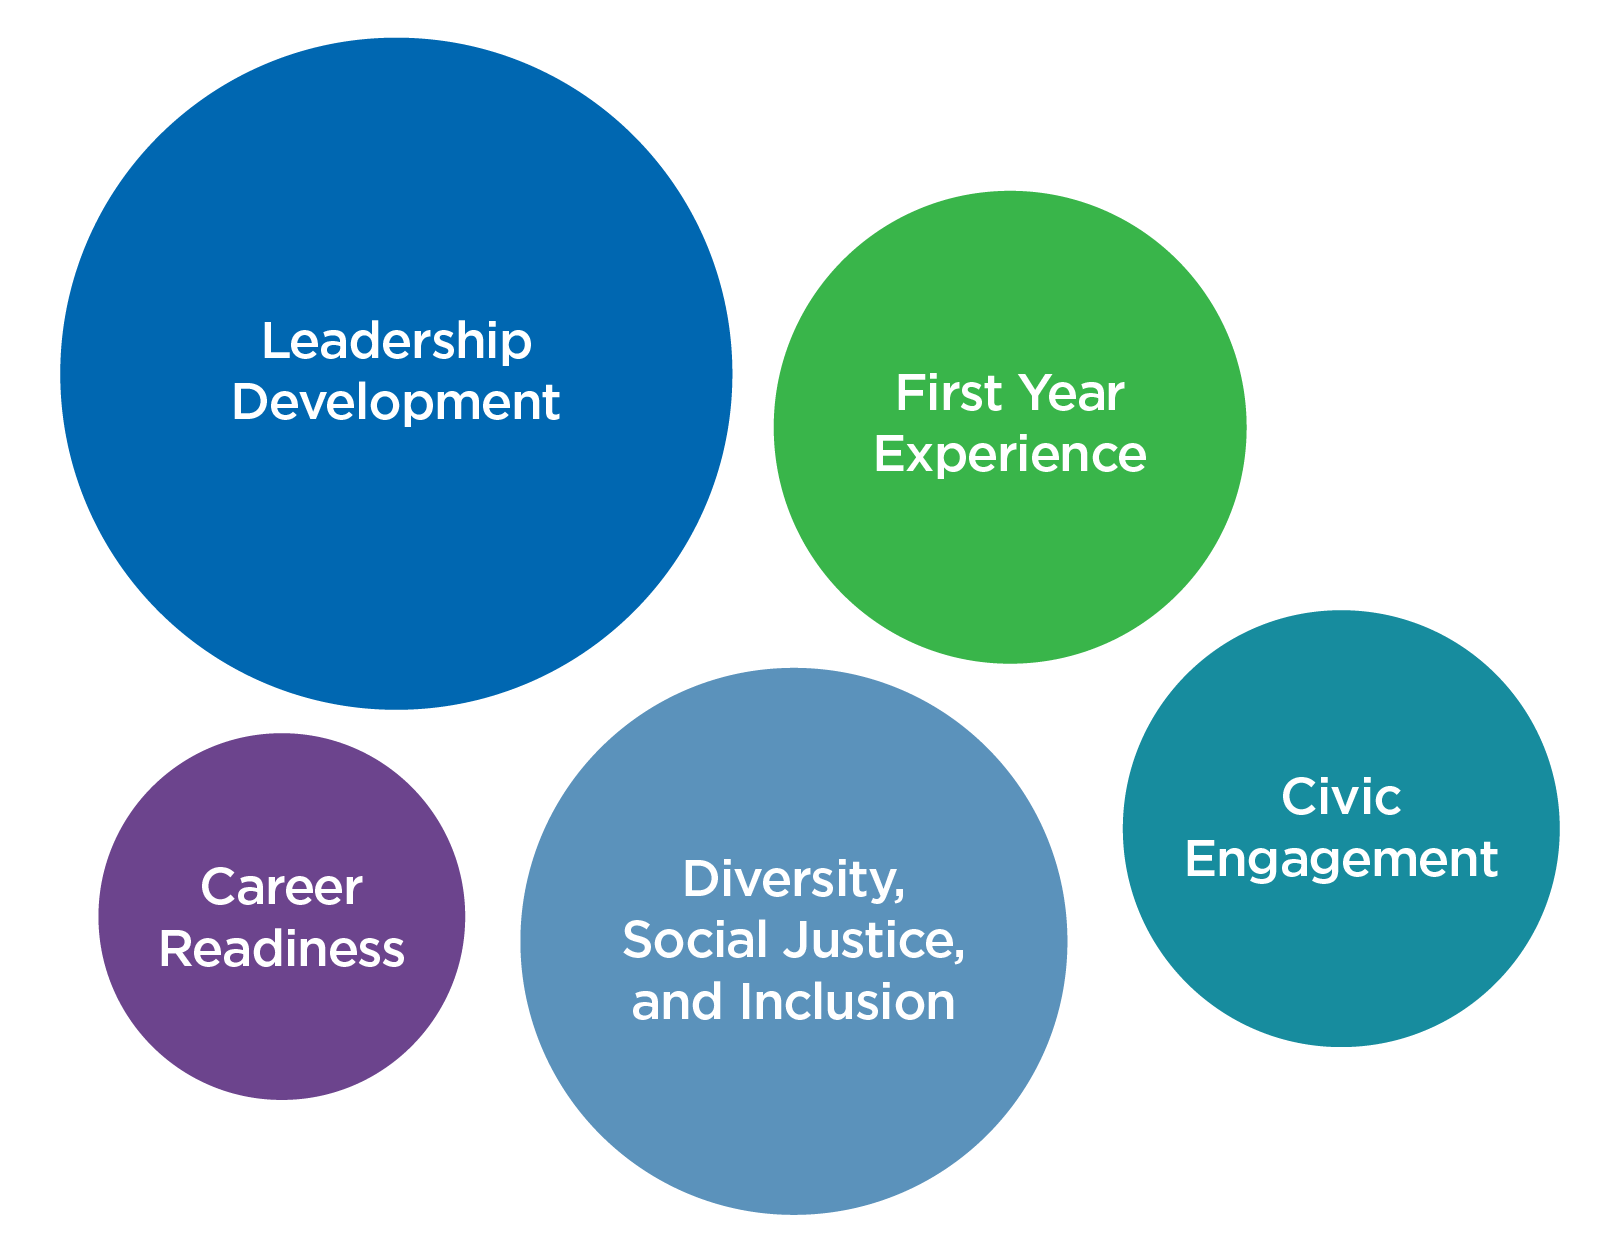 Leadership Development, First Year Experiences, Career Readiness, Civic Engagement, Diversity, Social Justice, and Inclusion